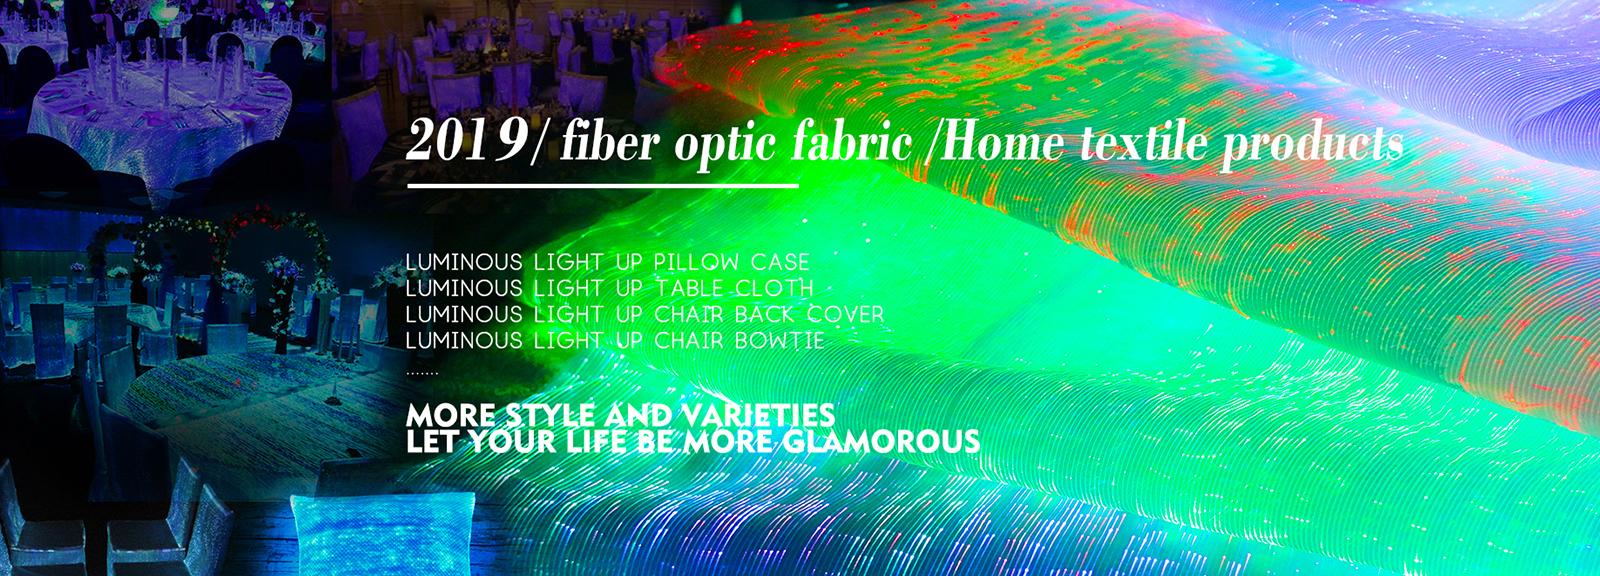 Luminous light up Intelligent Optical Fabric